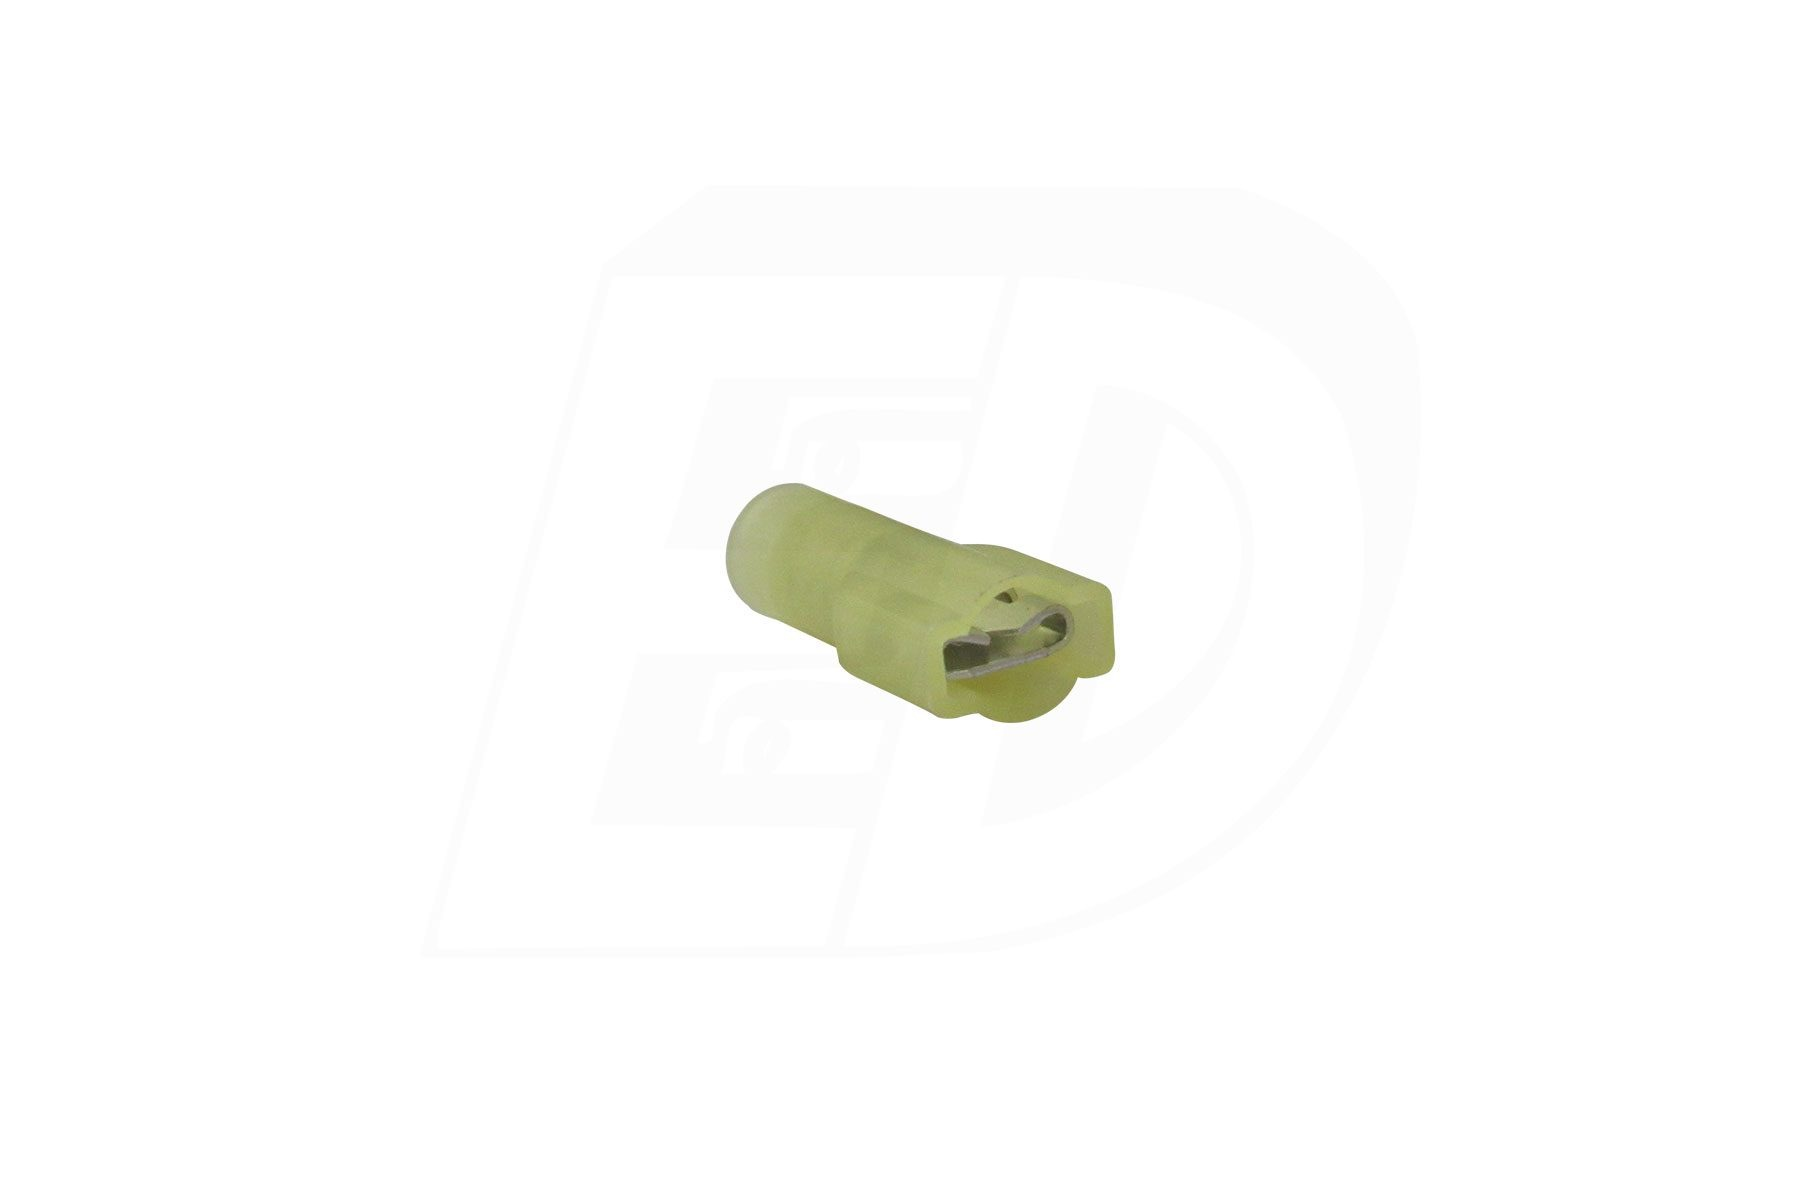 Butted Seam Nylon Insulated Female Flag Quick Disconnect Terminal 12 - 10 AWG